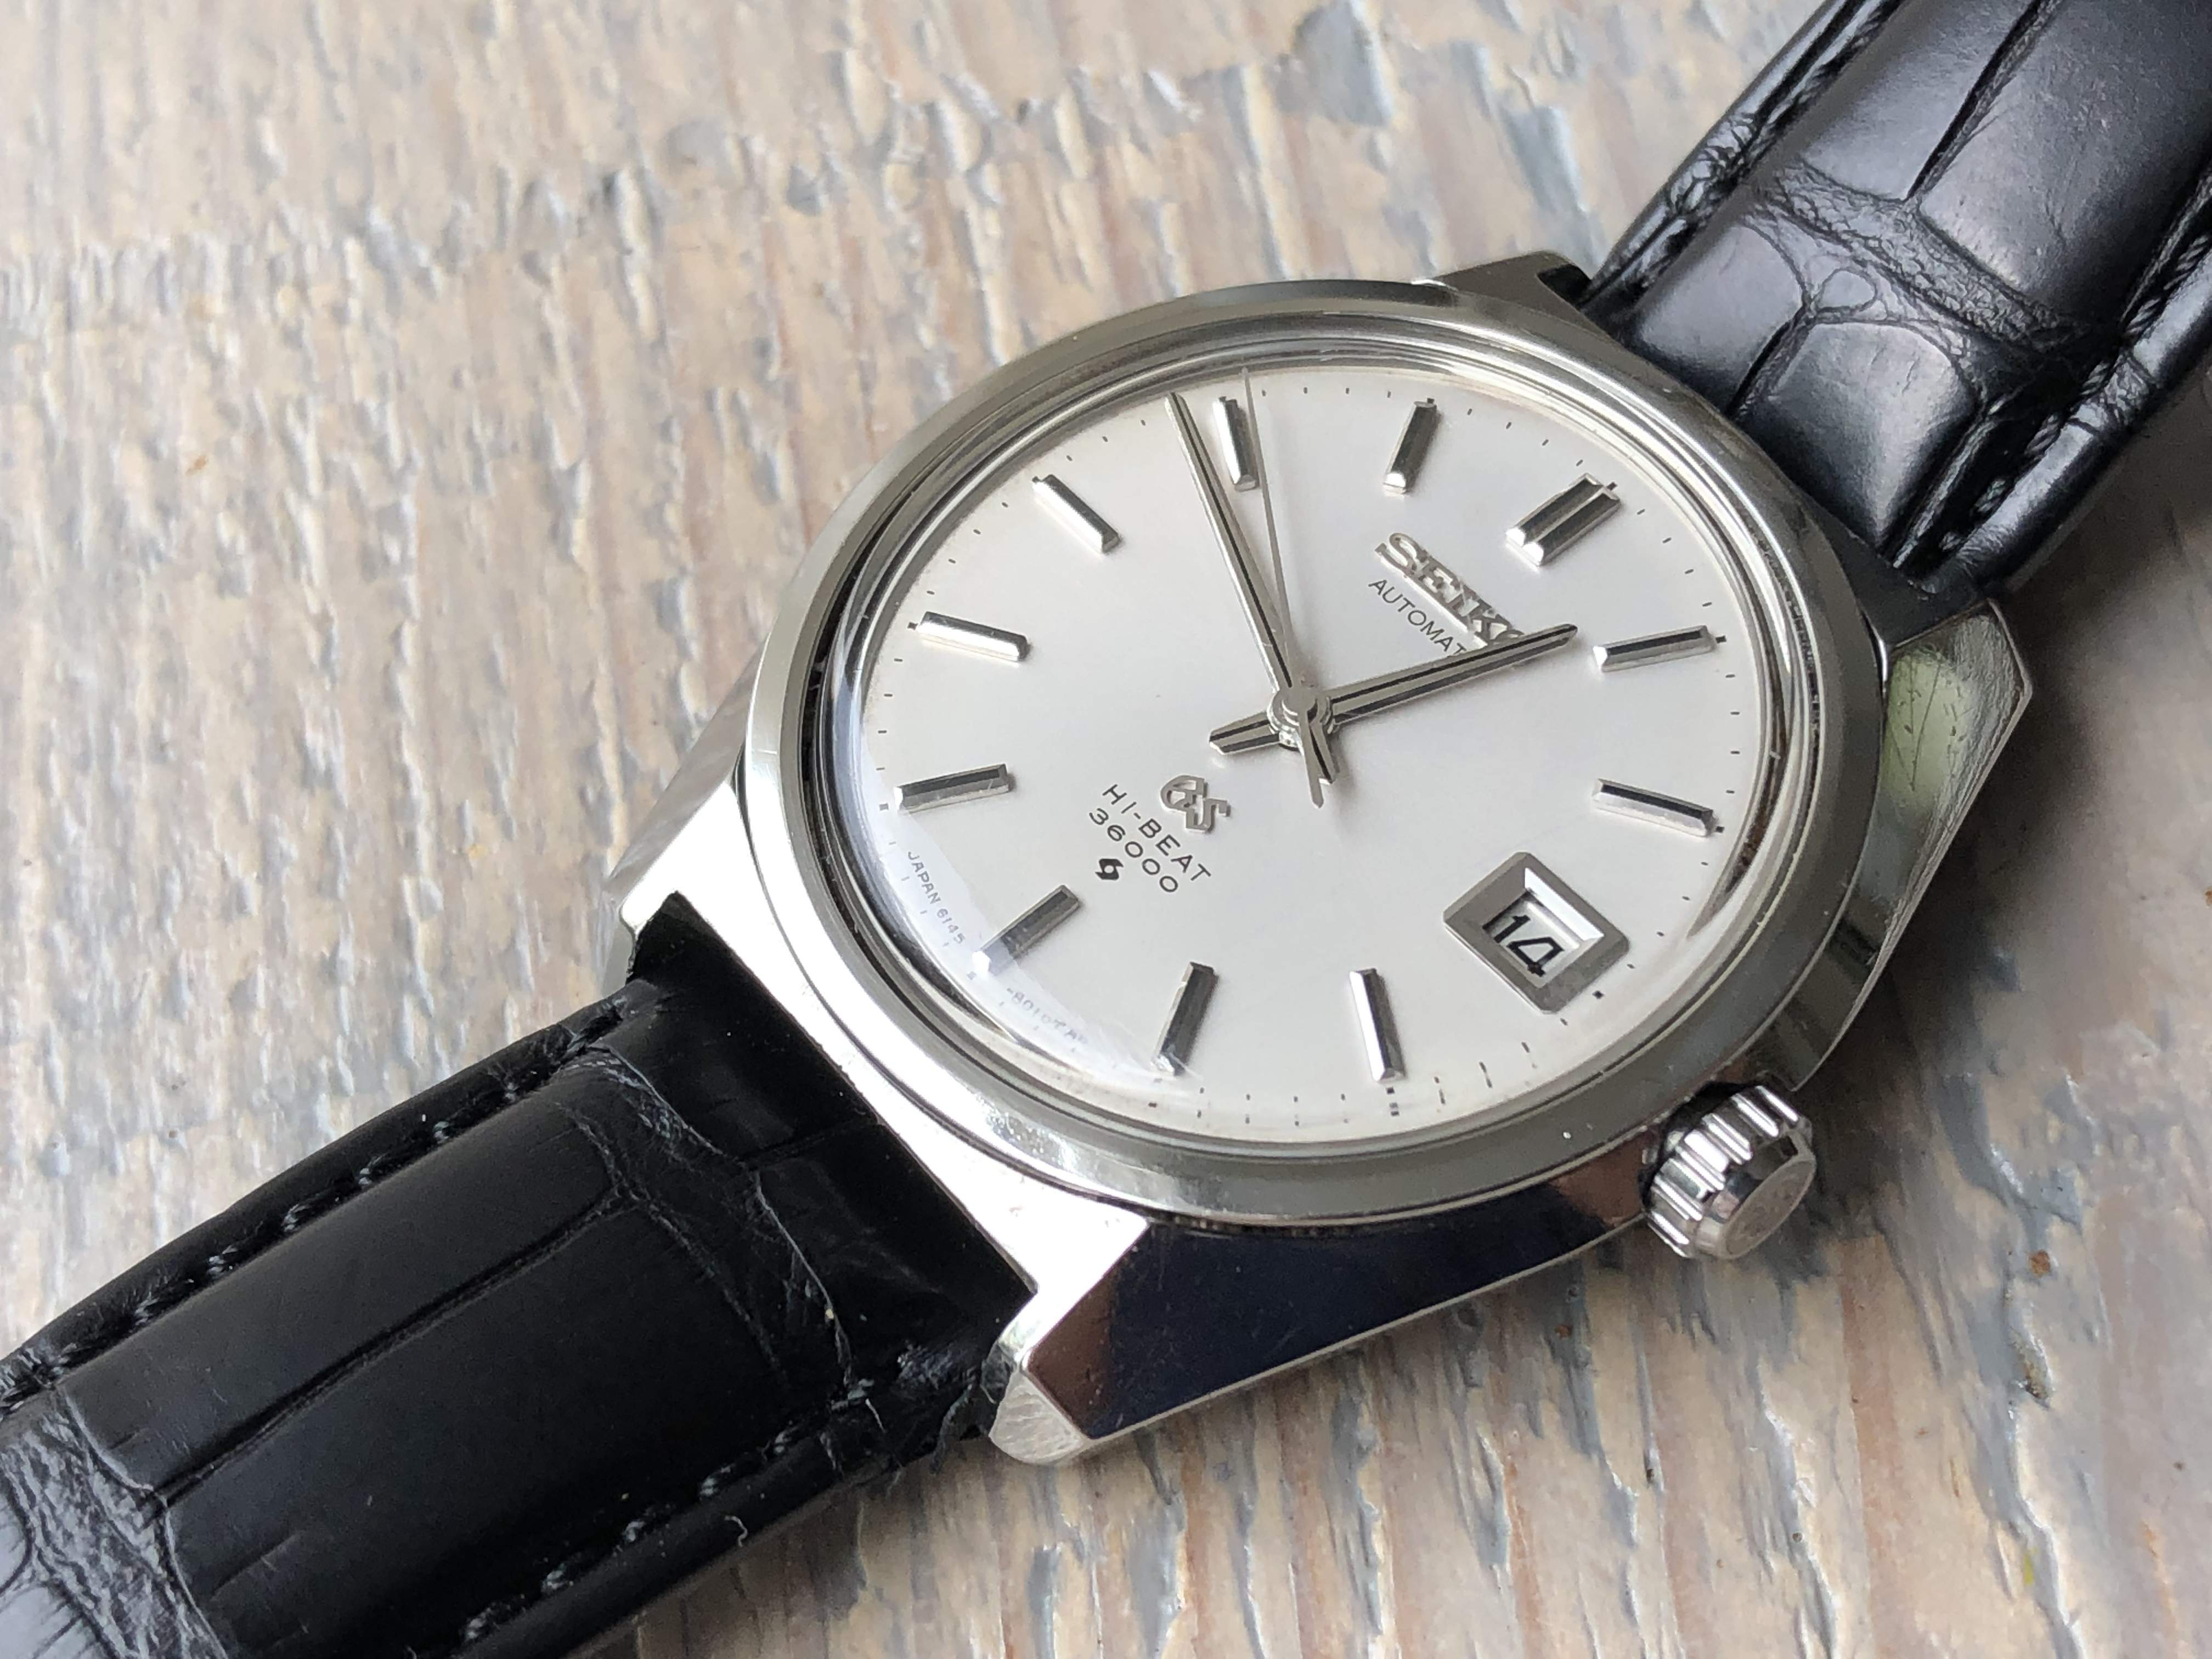 Grand Seiko 6145-8000 serviced with new mainspring (Sold)